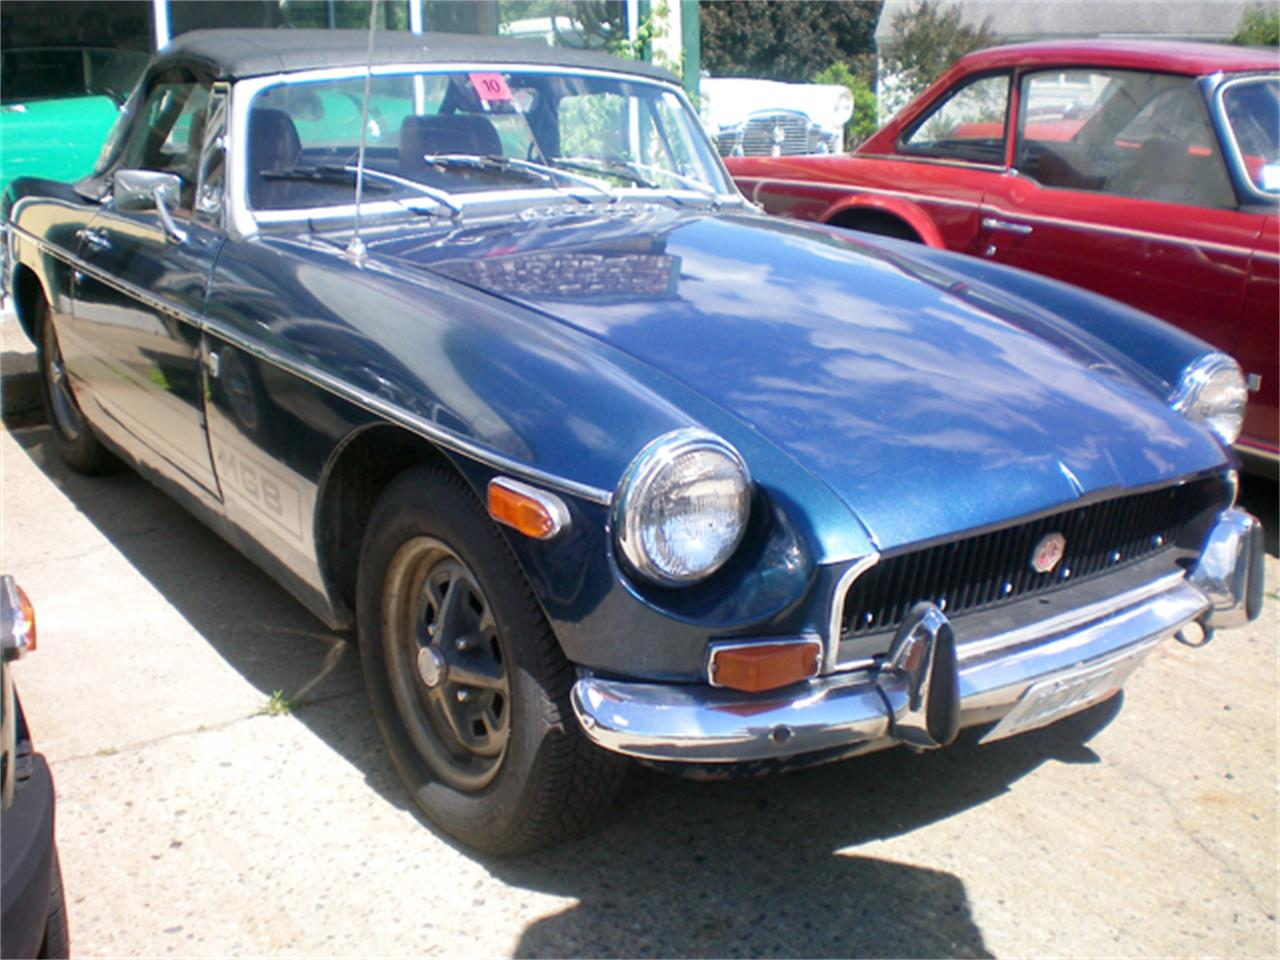 Large Picture of 1972 MG MGB located in New Hampshire - $4,900.00 - LH78